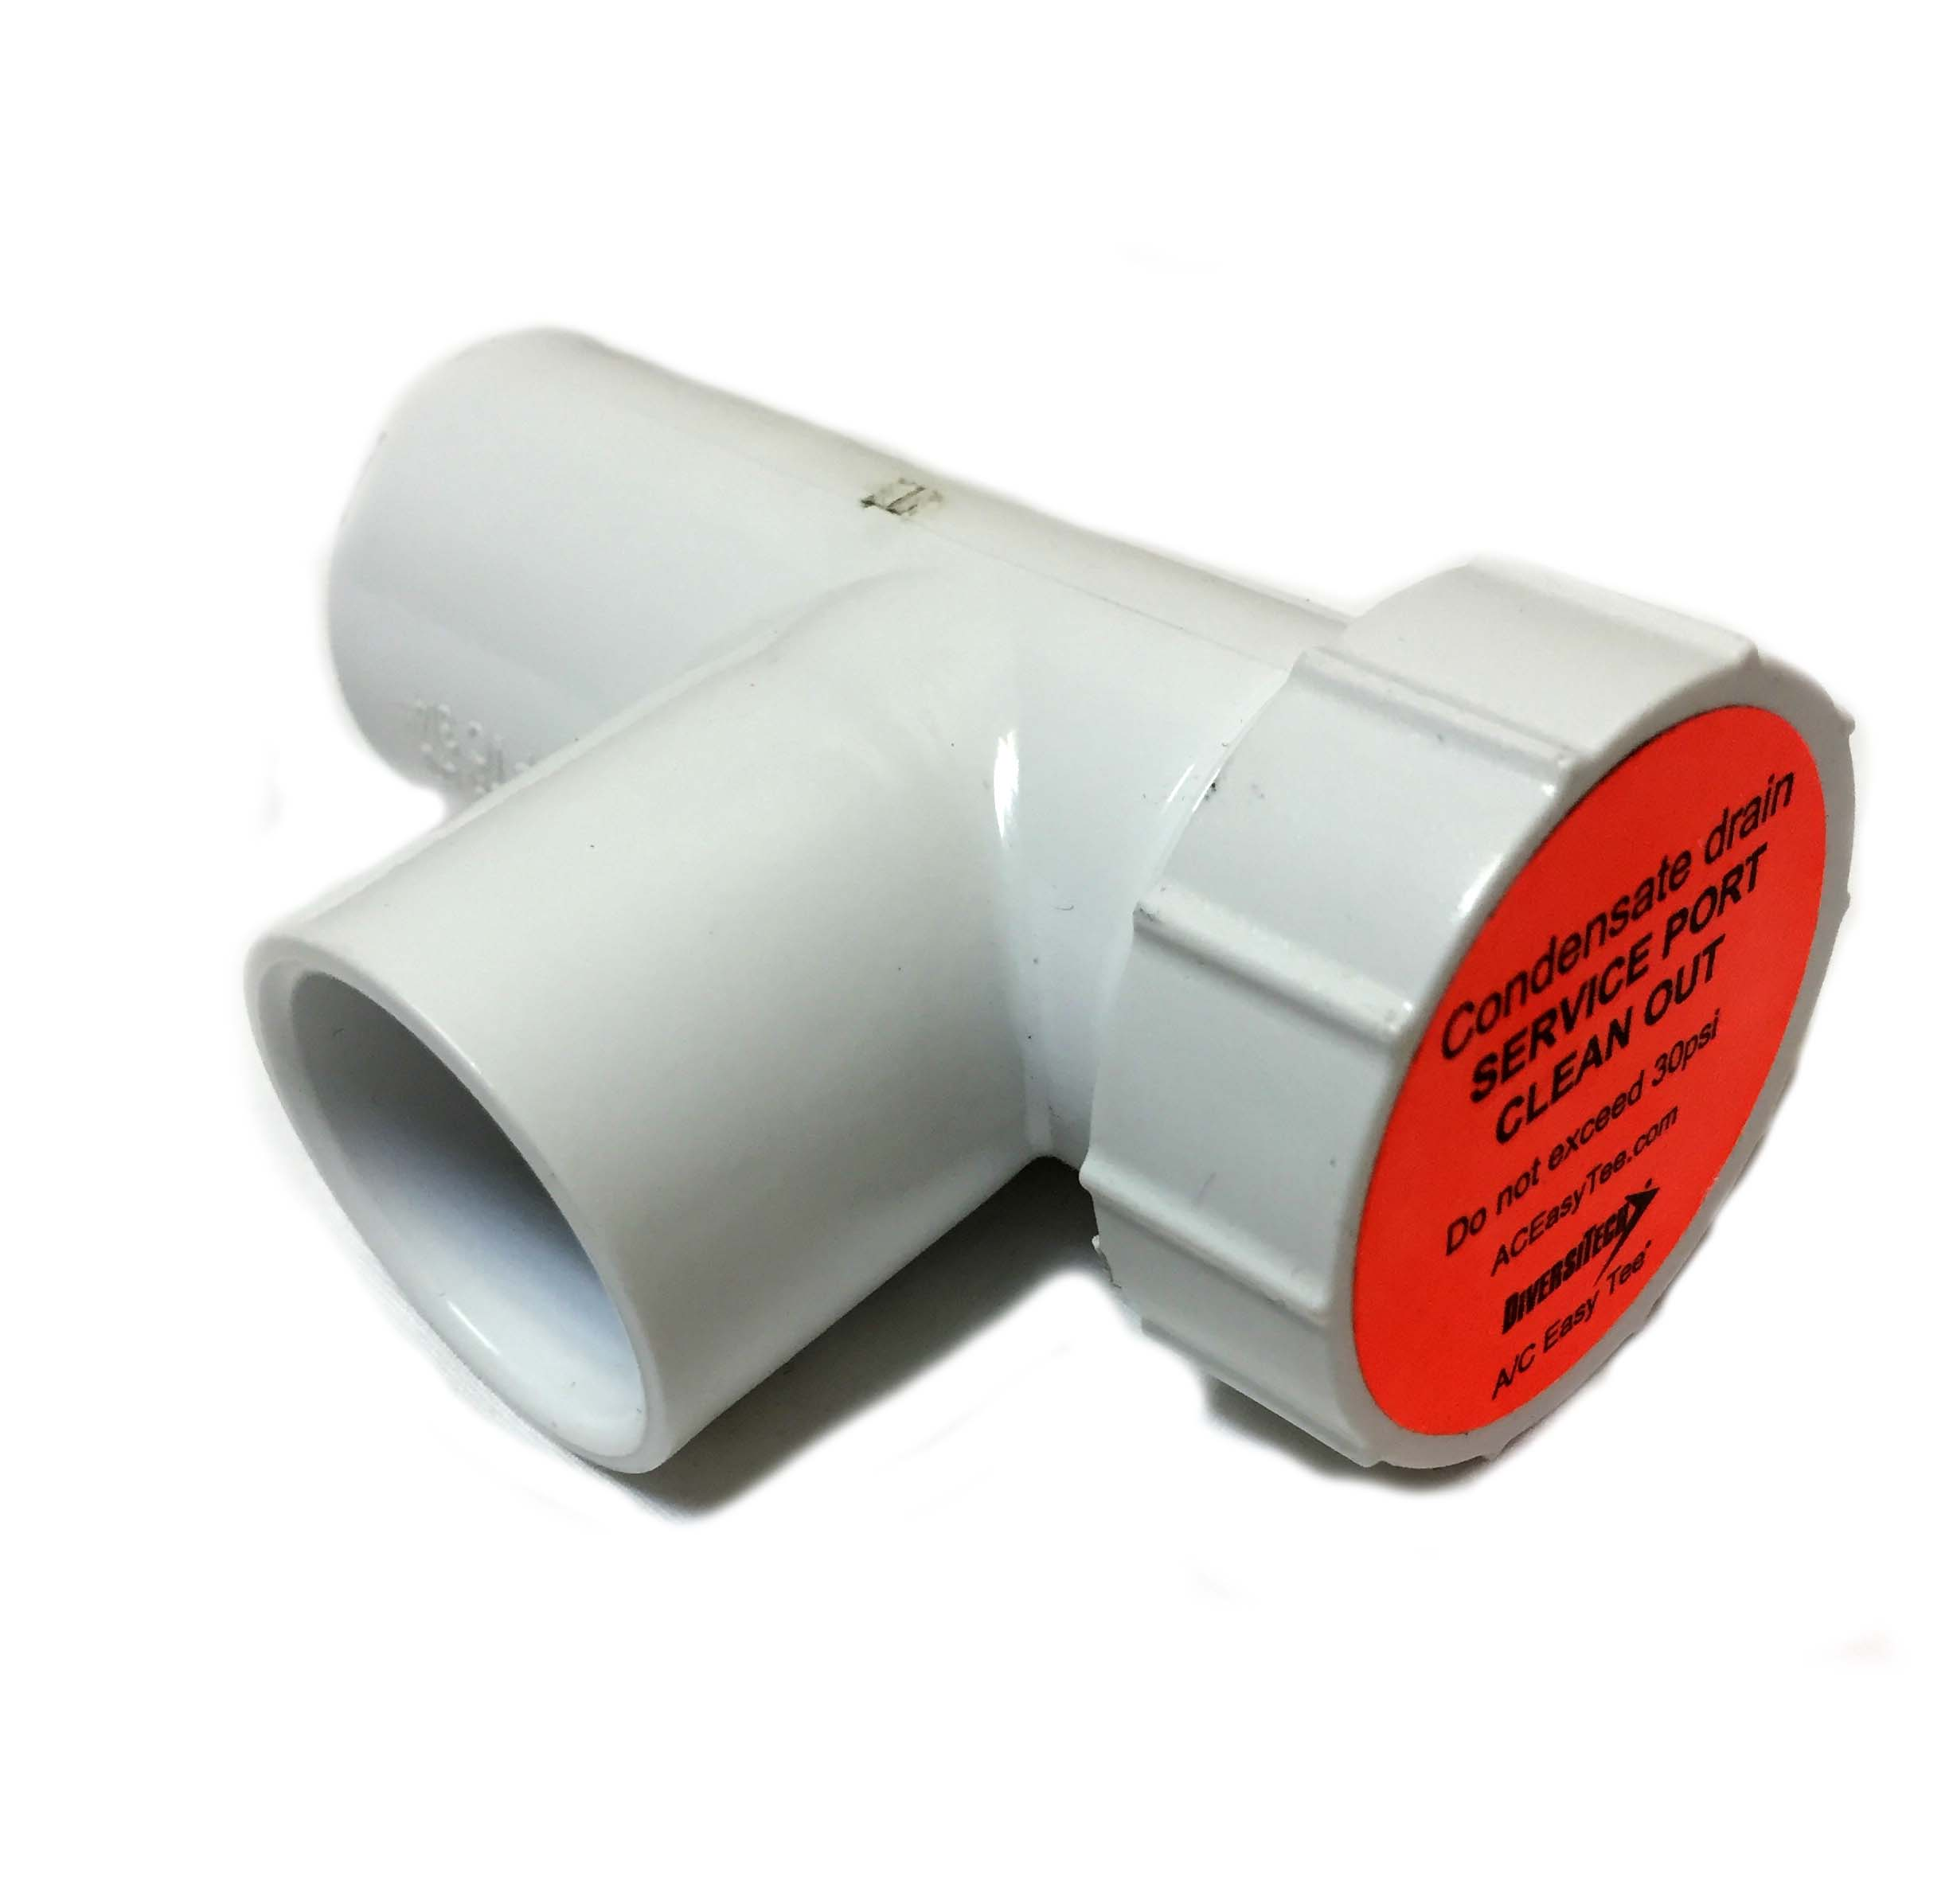 A c drain line easy tee service kit pvc fitting